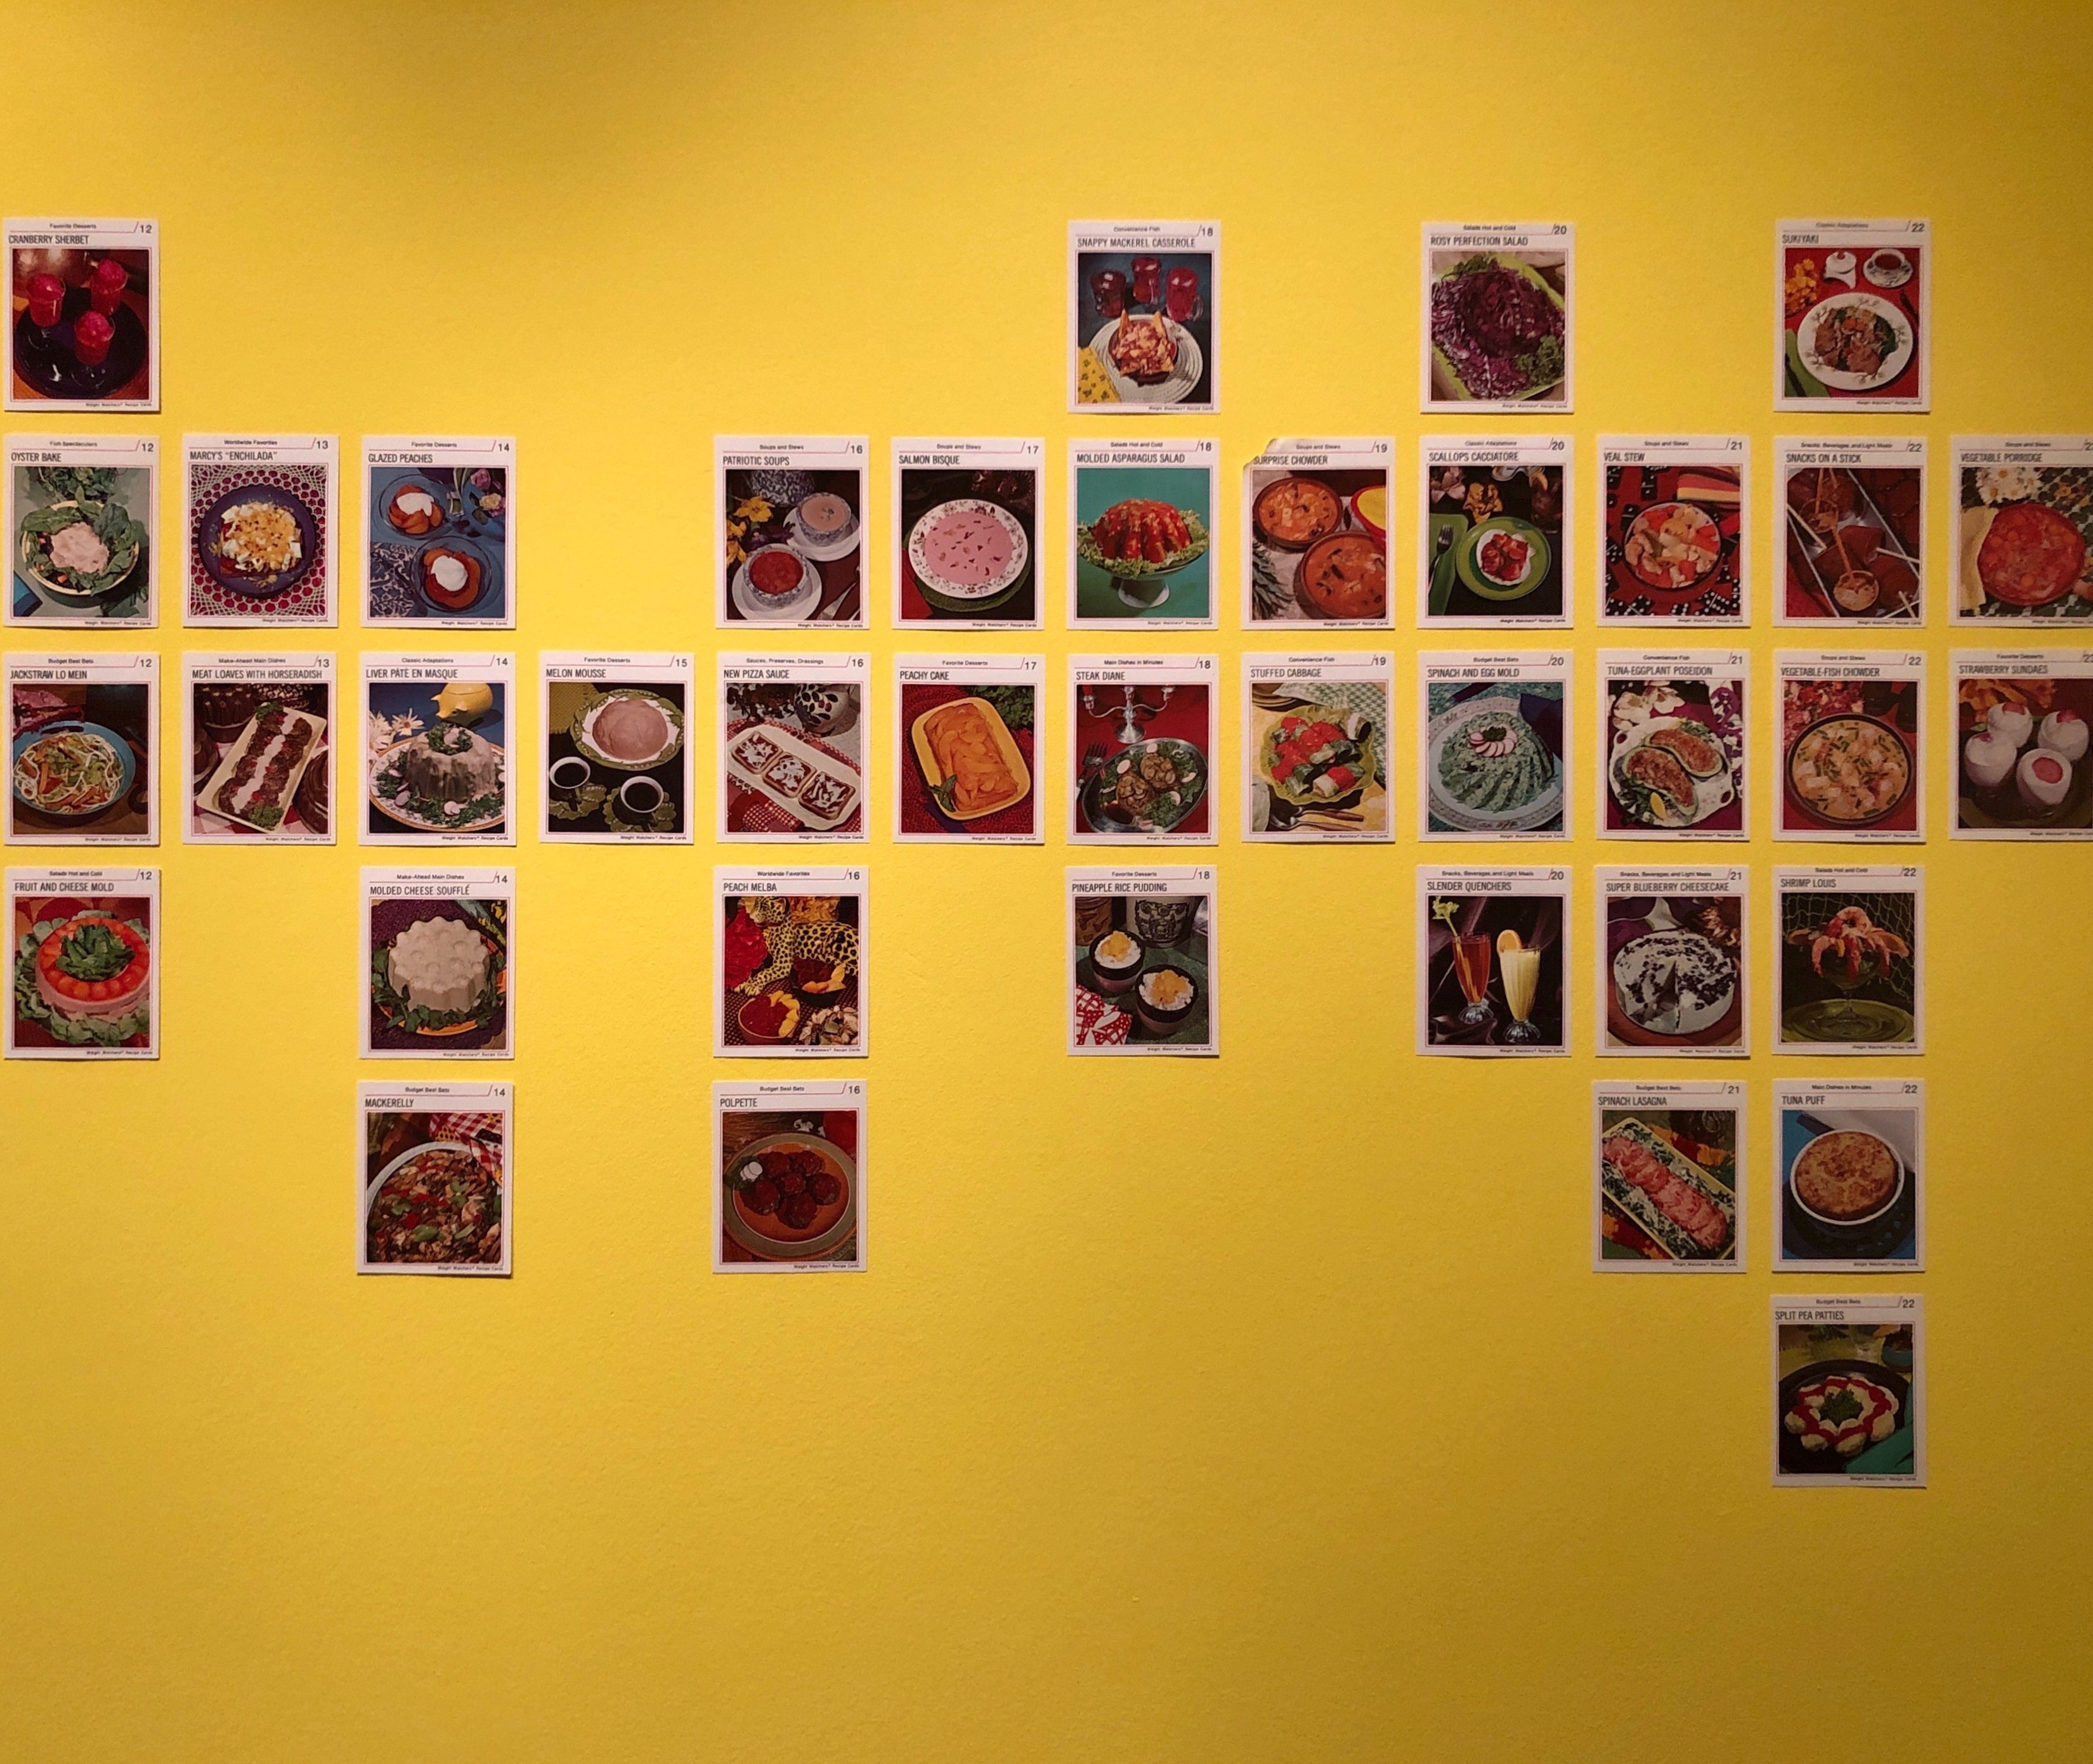 A wall-mounted assortment of recipe cards distributed by WeightWatchers in the 1970s.